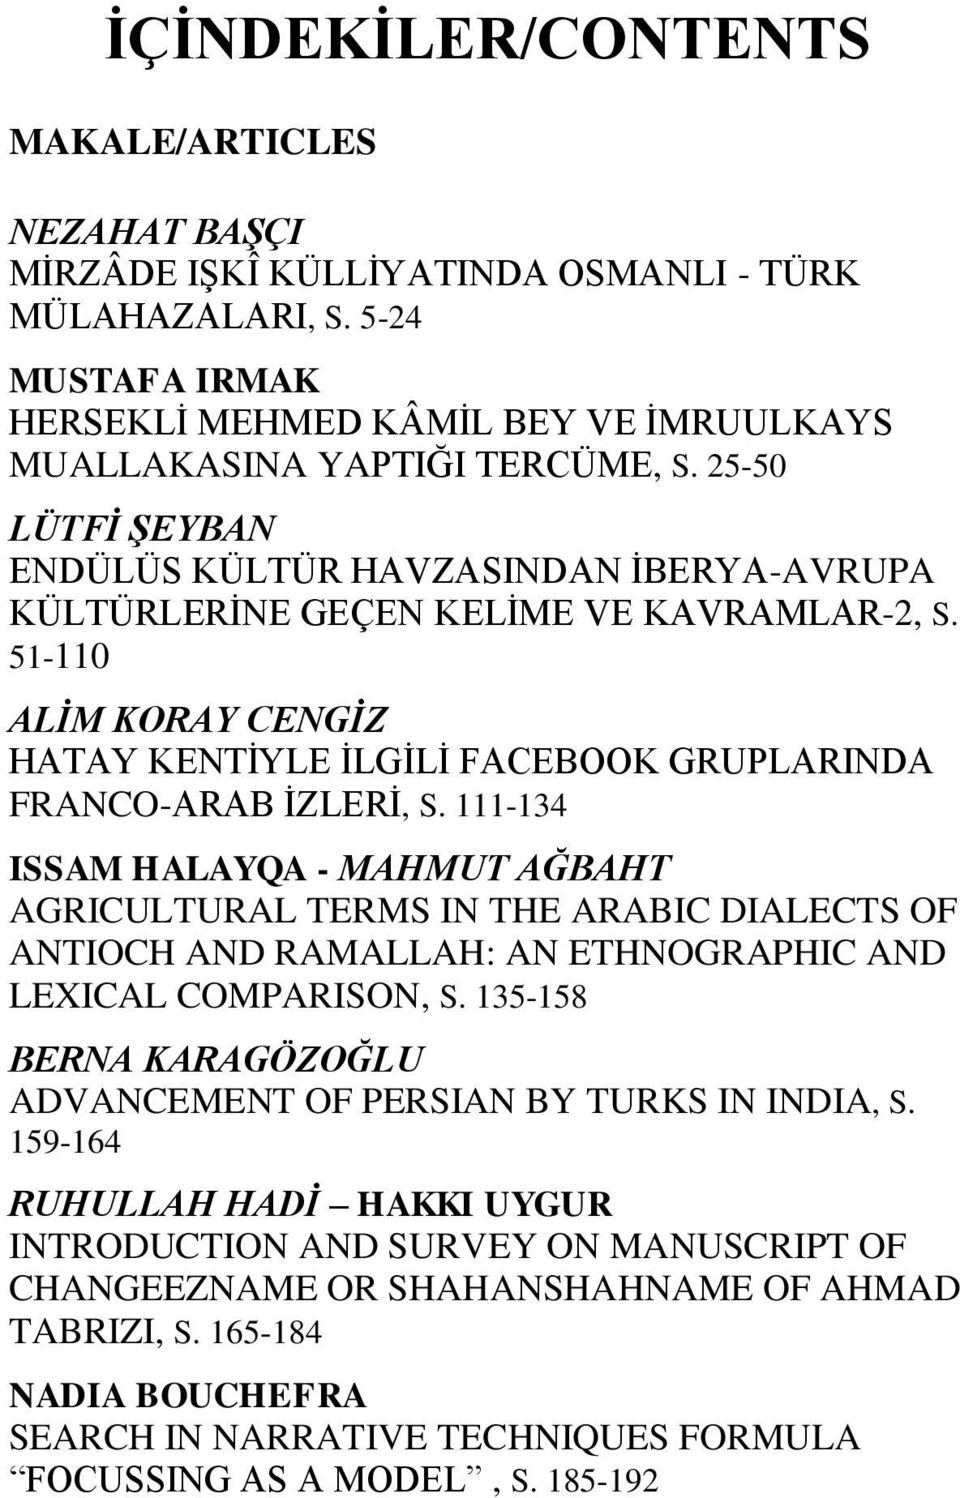 111-134 ISSAM HALAYQA - MAHMUT AĞBAHT AGRICULTURAL TERMS IN THE ARABIC DIALECTS OF ANTIOCH AND RAMALLAH: AN ETHNOGRAPHIC AND LEXICAL COMPARISON, S.